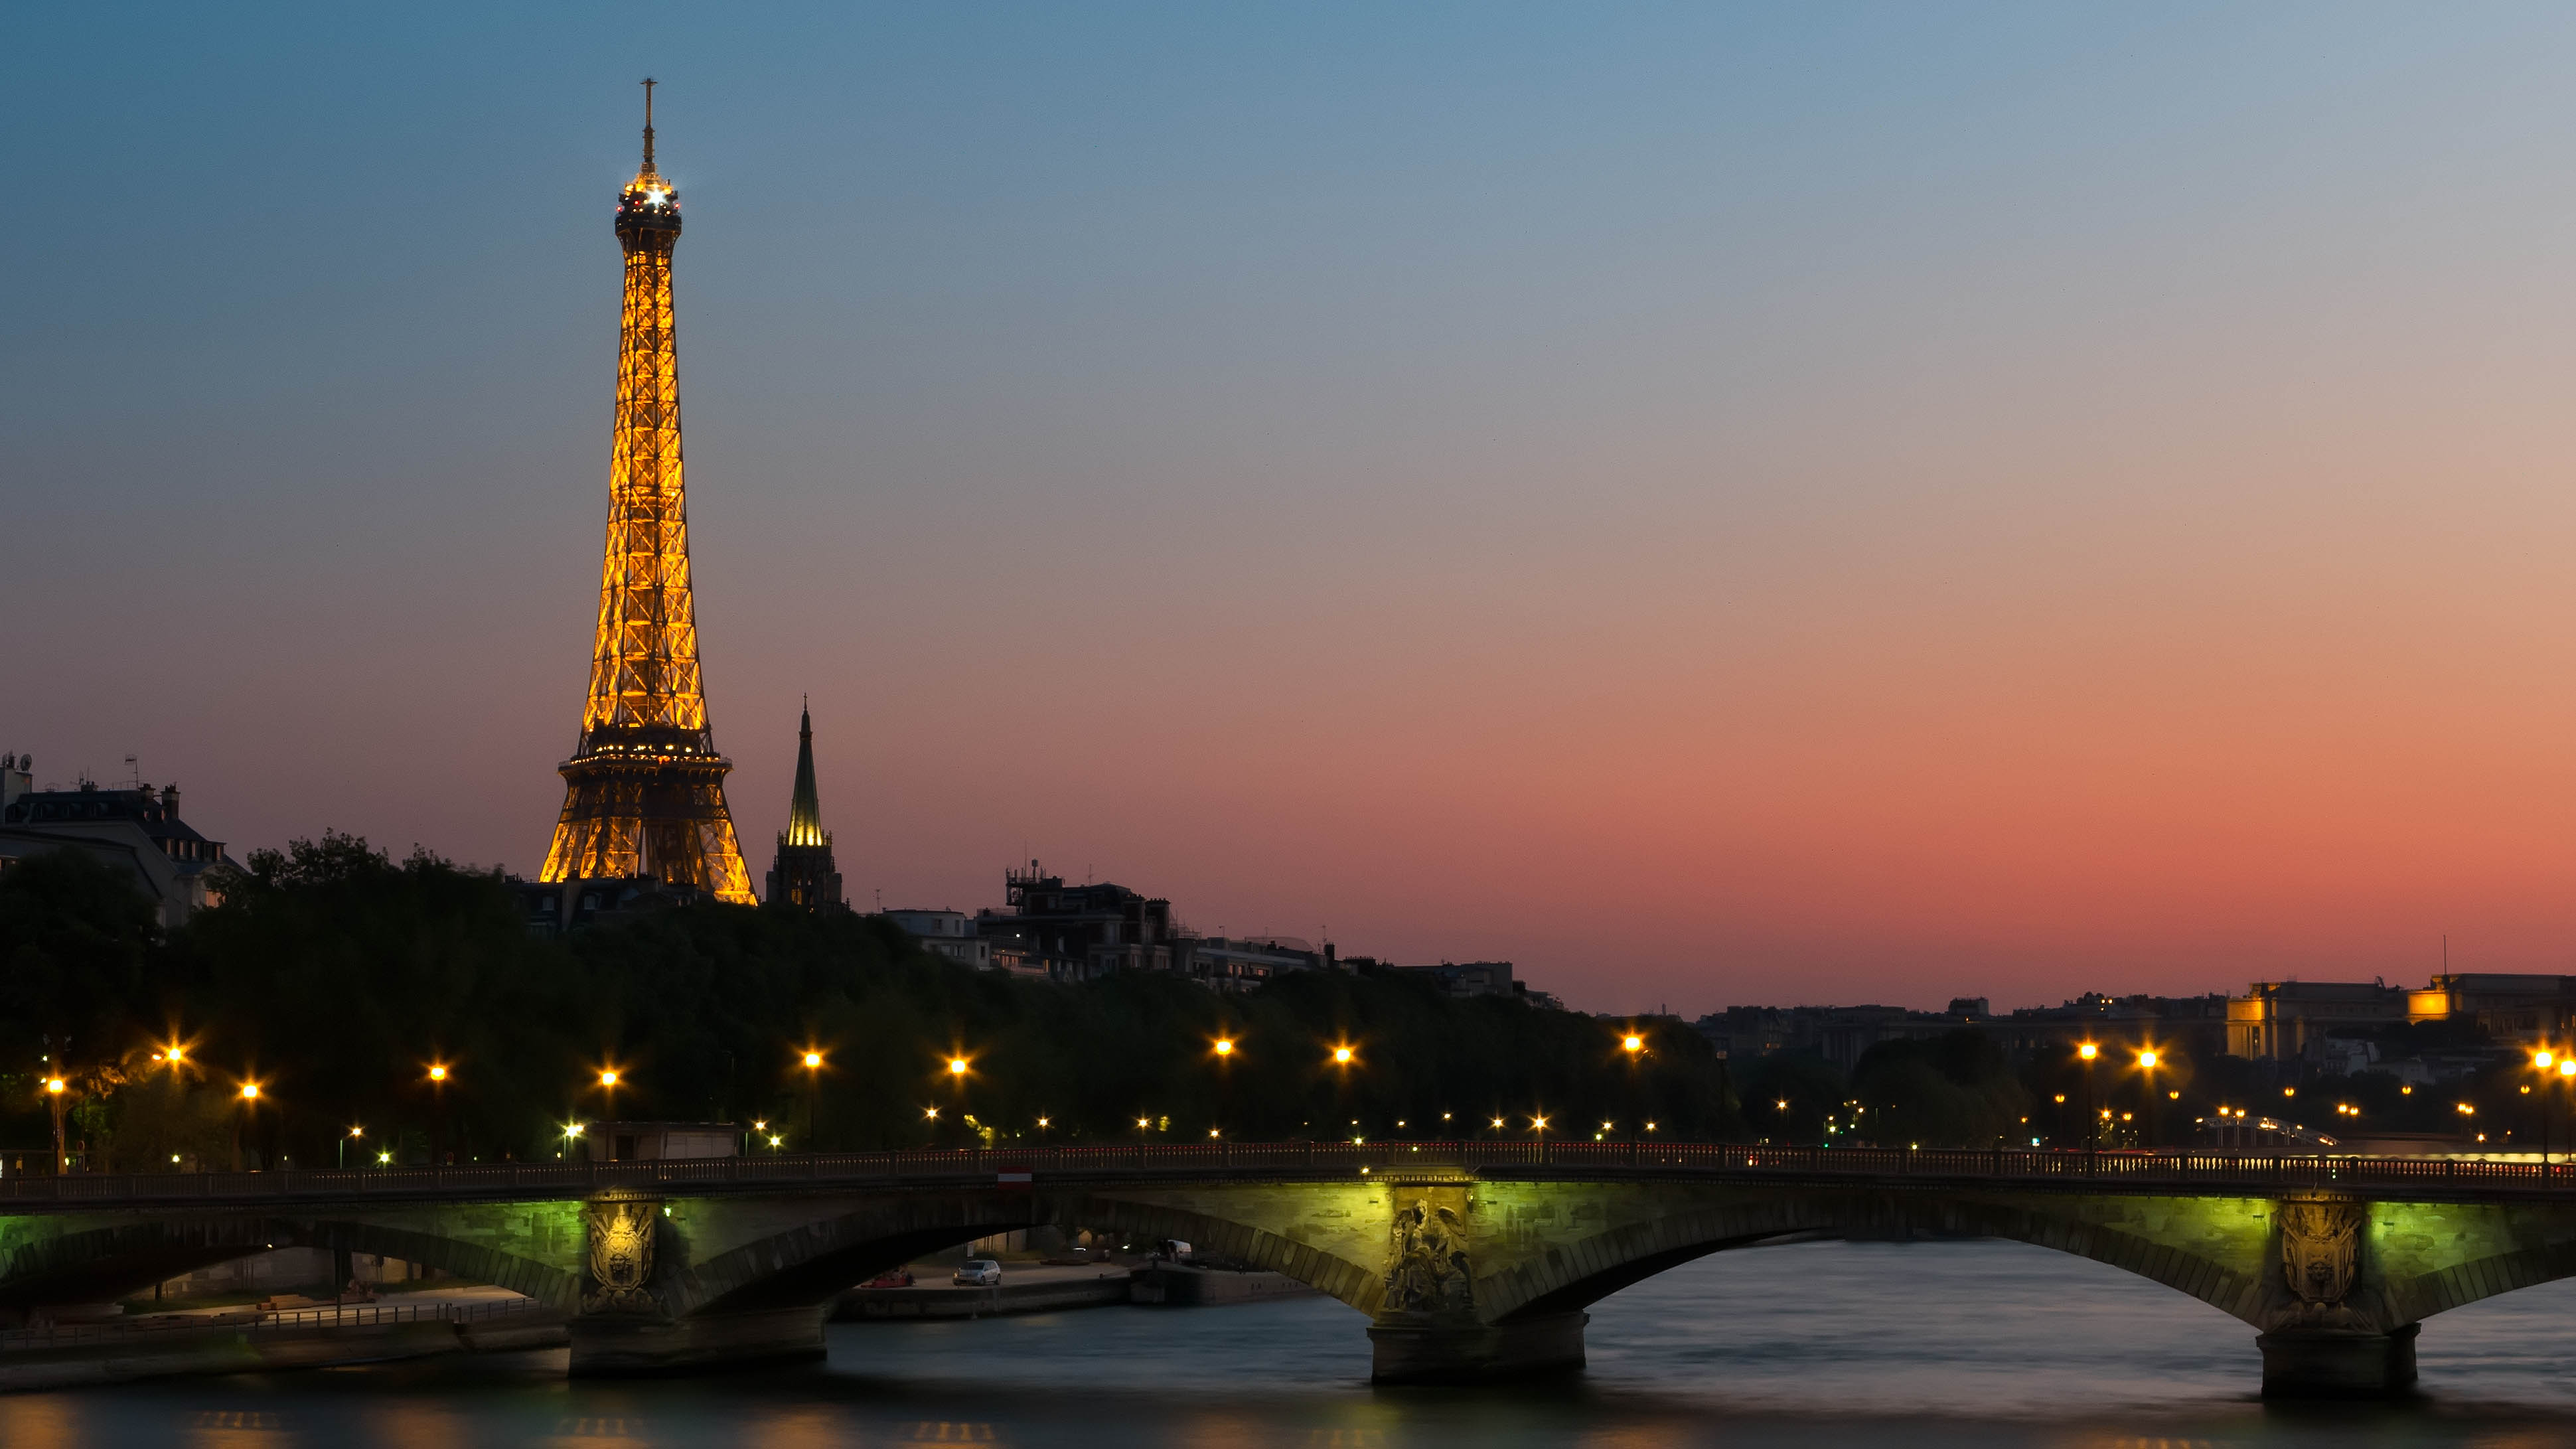 Paris Hotels, Most Expensive Luxury Hotels, Best Luxury Hotels in Paris.